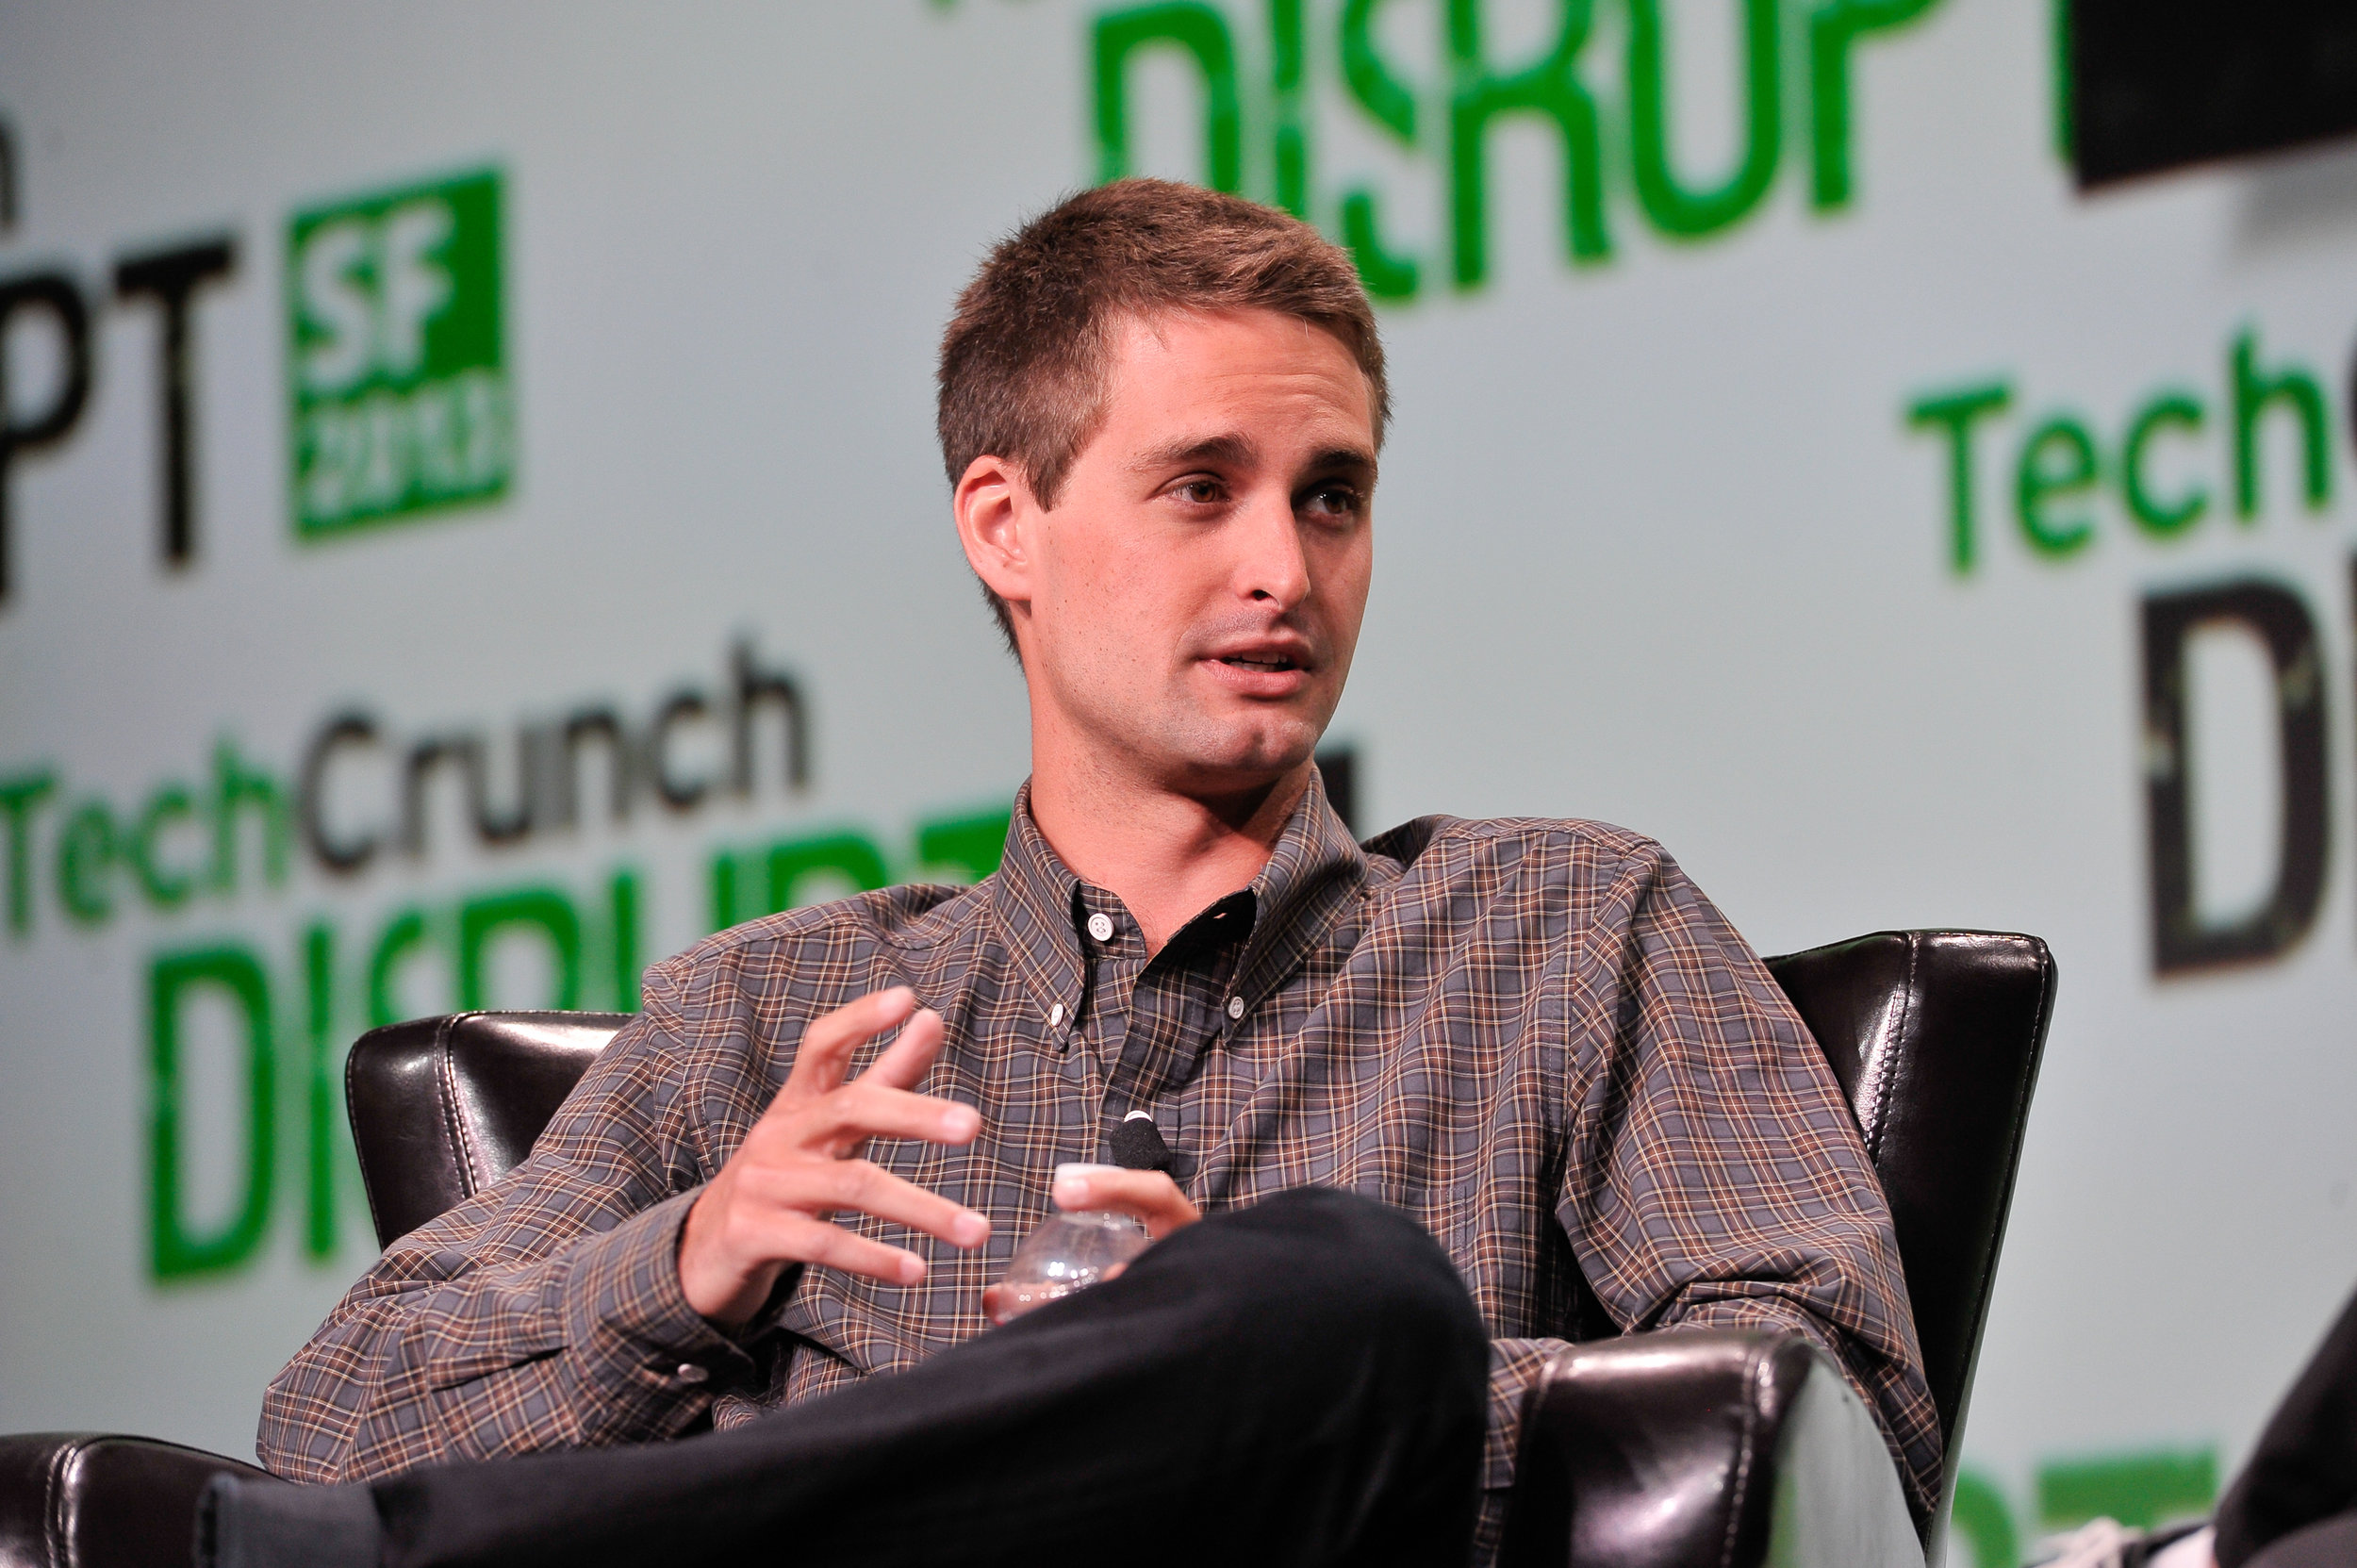 Snapchat co-founder and CEO Evan Spiegel at TechCrunch Disrupt